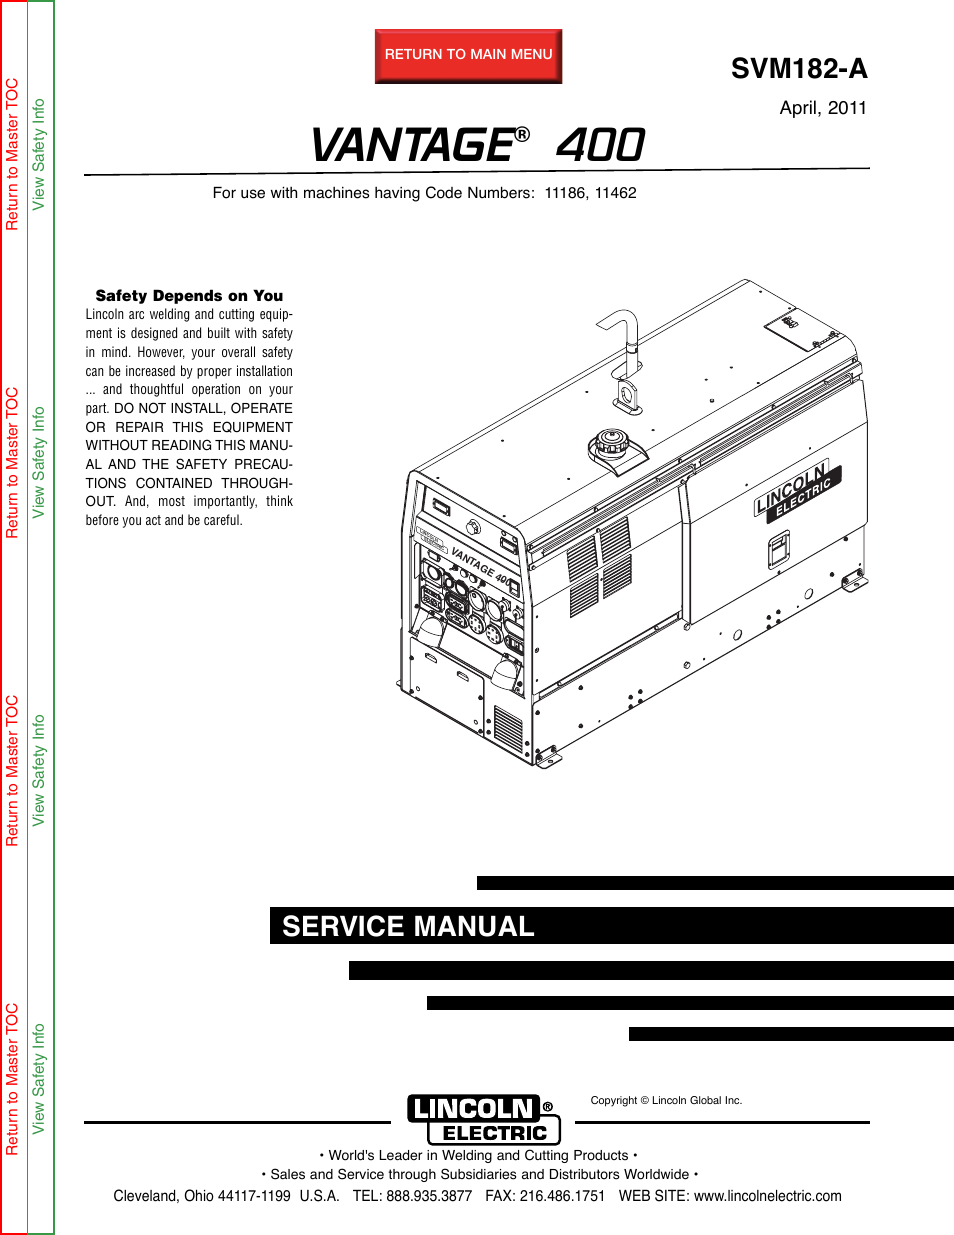 Diagram Of Distributor For Lincoln Welder Electrical Wiring And Parts List Craftsman Welderparts Model 113201440 Electric Vantage 400 User Manual 166 Pages Engine